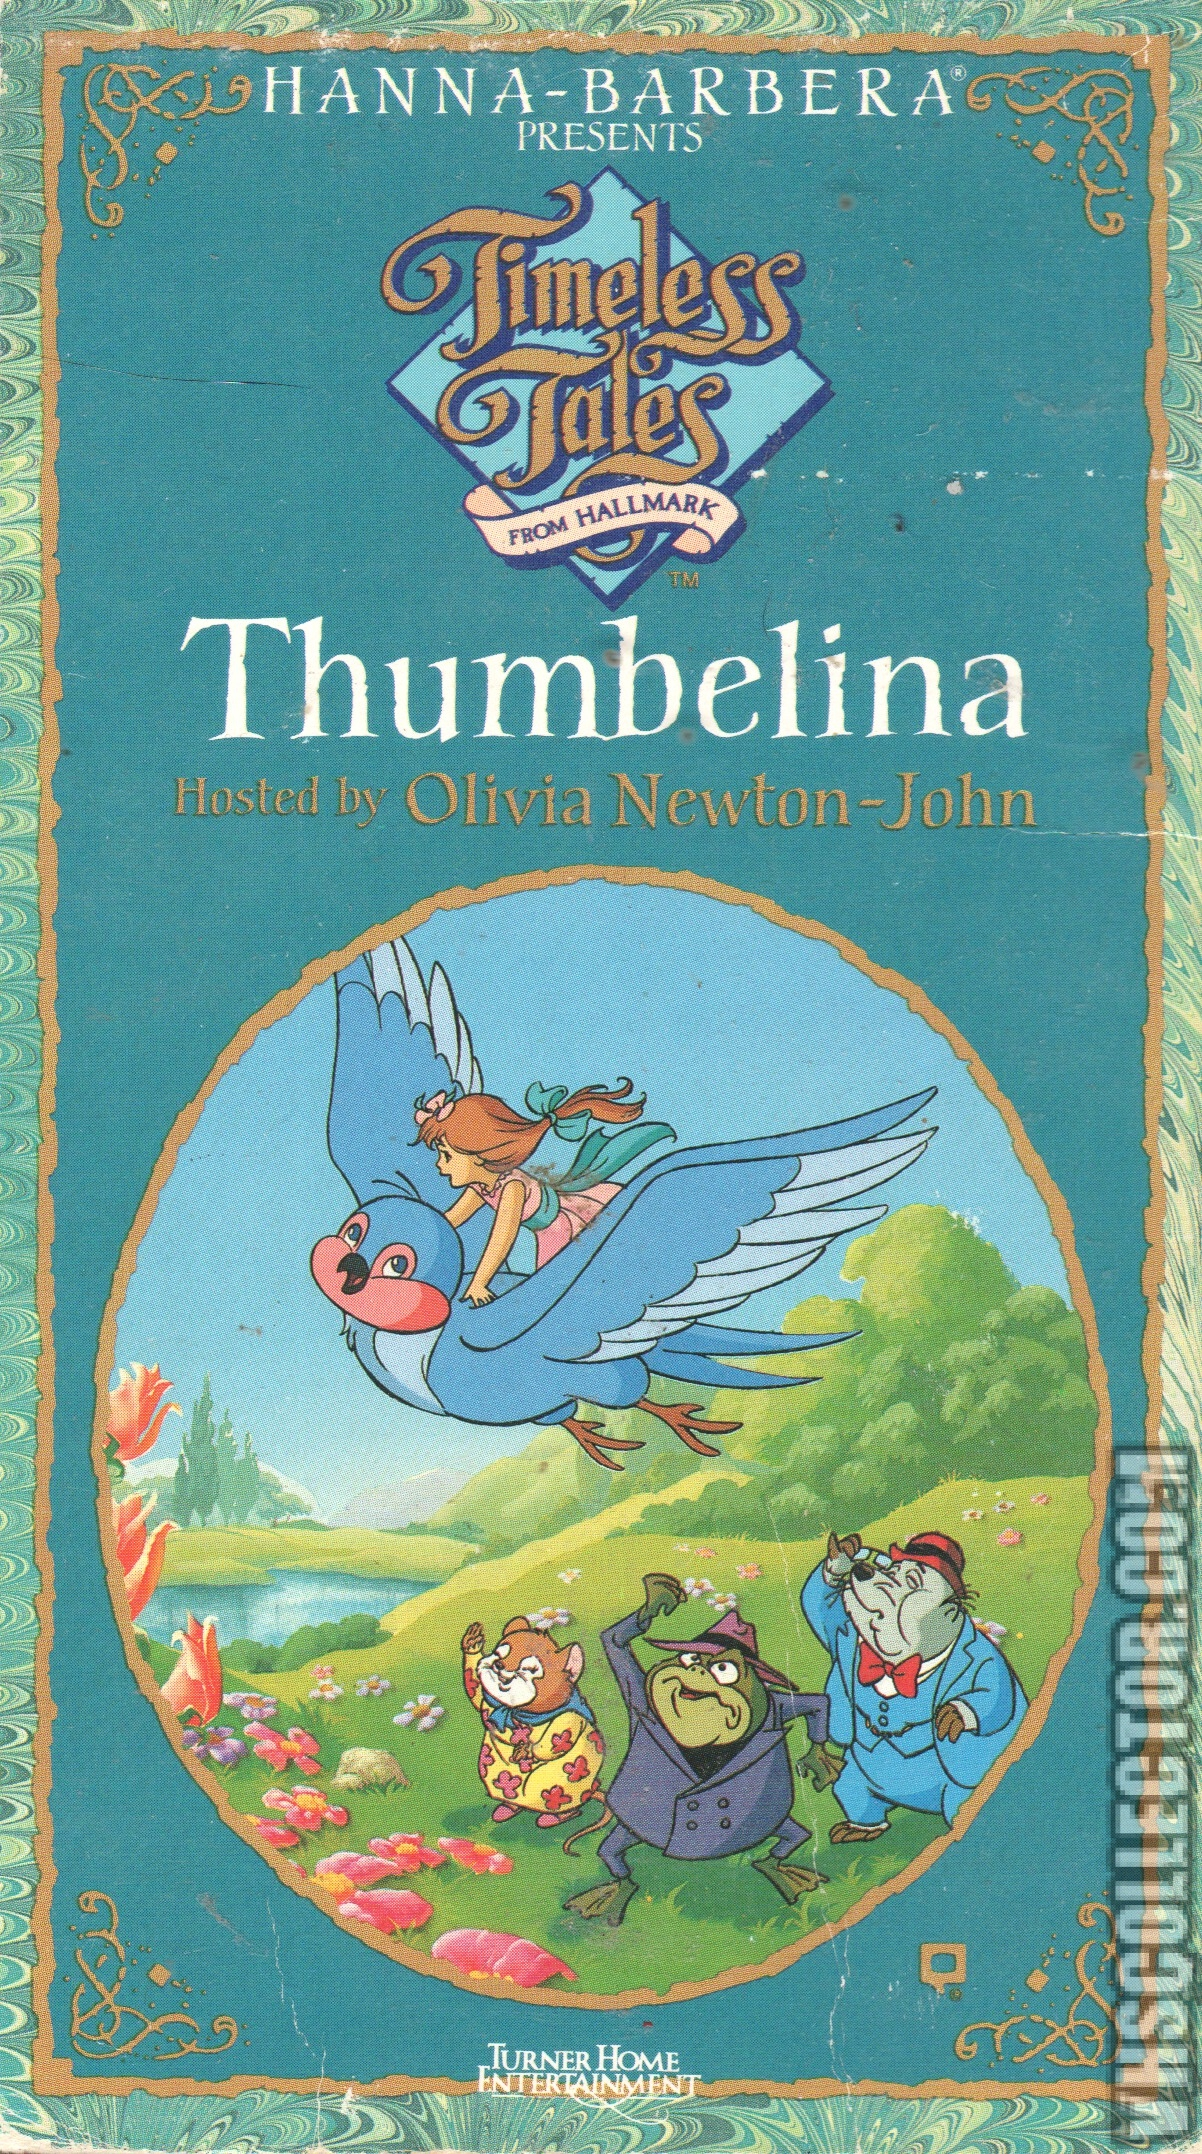 Timeless Tales from Hallmark: Thumbelina (1990-2000 VHS)